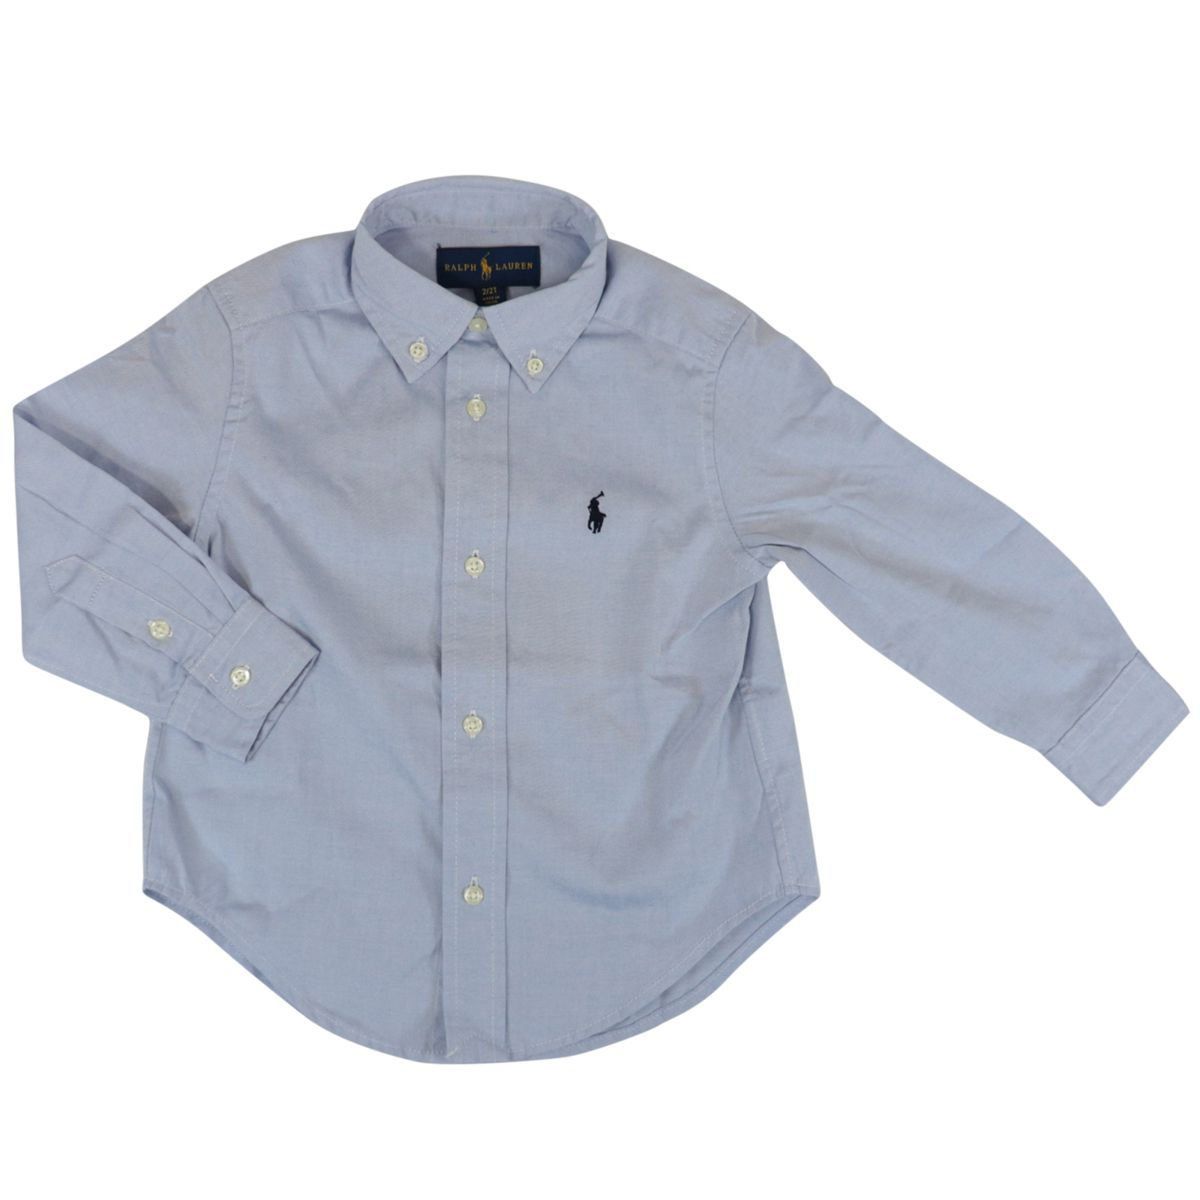 Long-sleeved shirt in custom fit cotton with button-down collar Oxford blue Polo Ralph Lauren